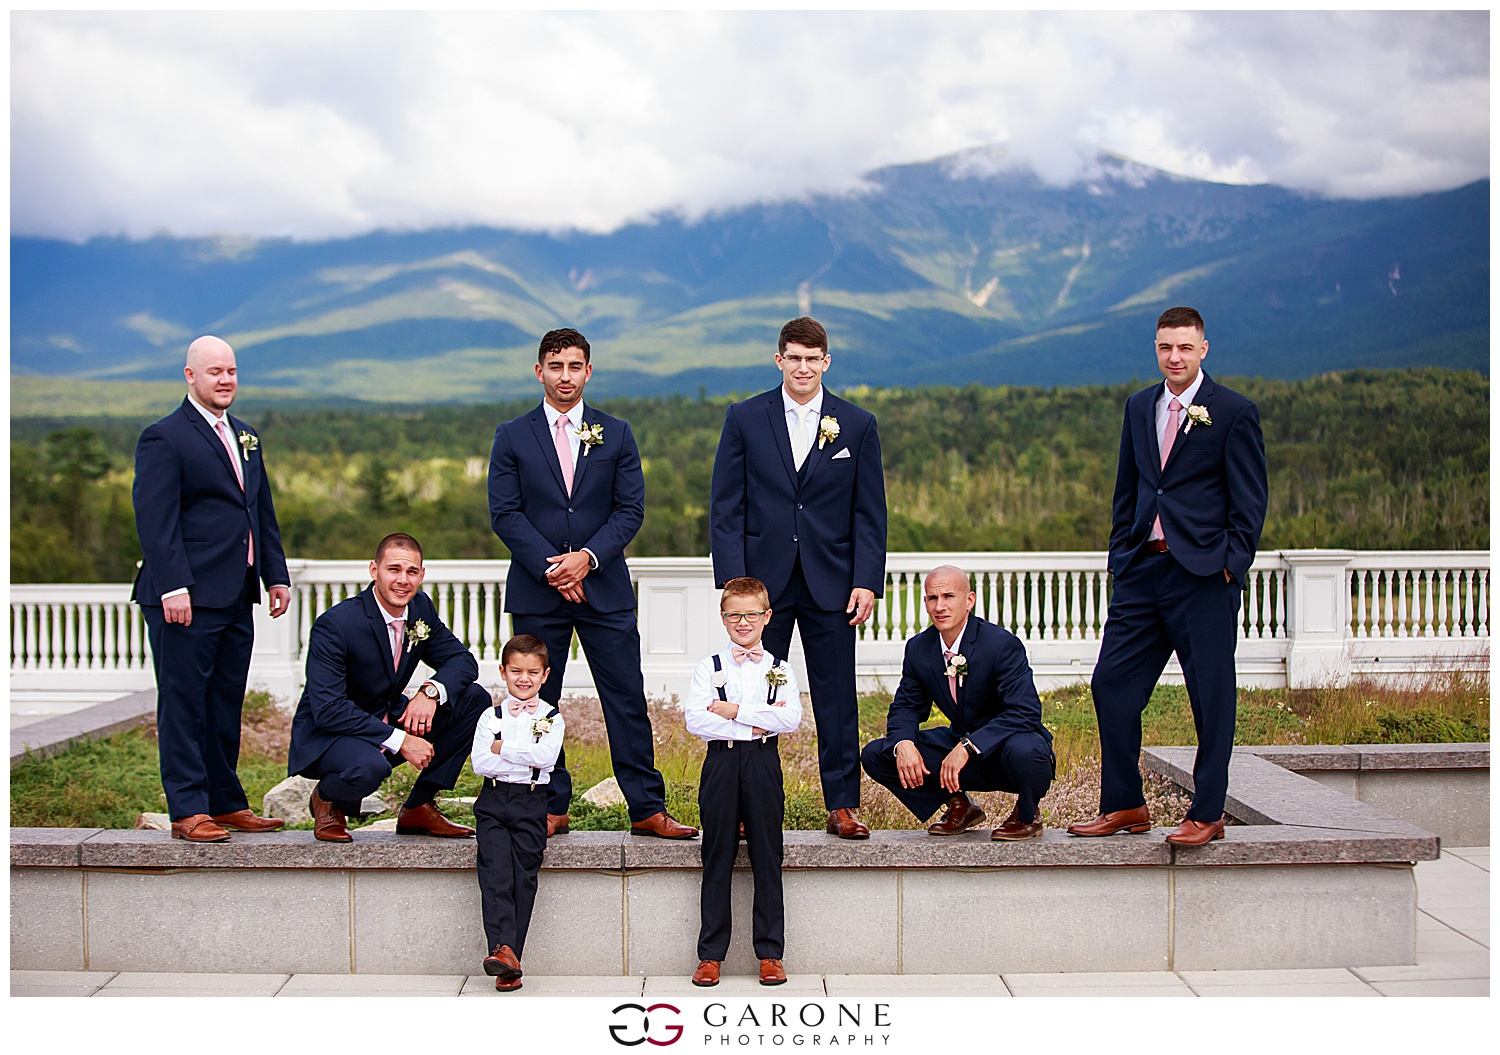 Omni_Mount_Washington_hotel_Wedding_White_Mountain_Wedding_Garone_Photography_0005.jpg